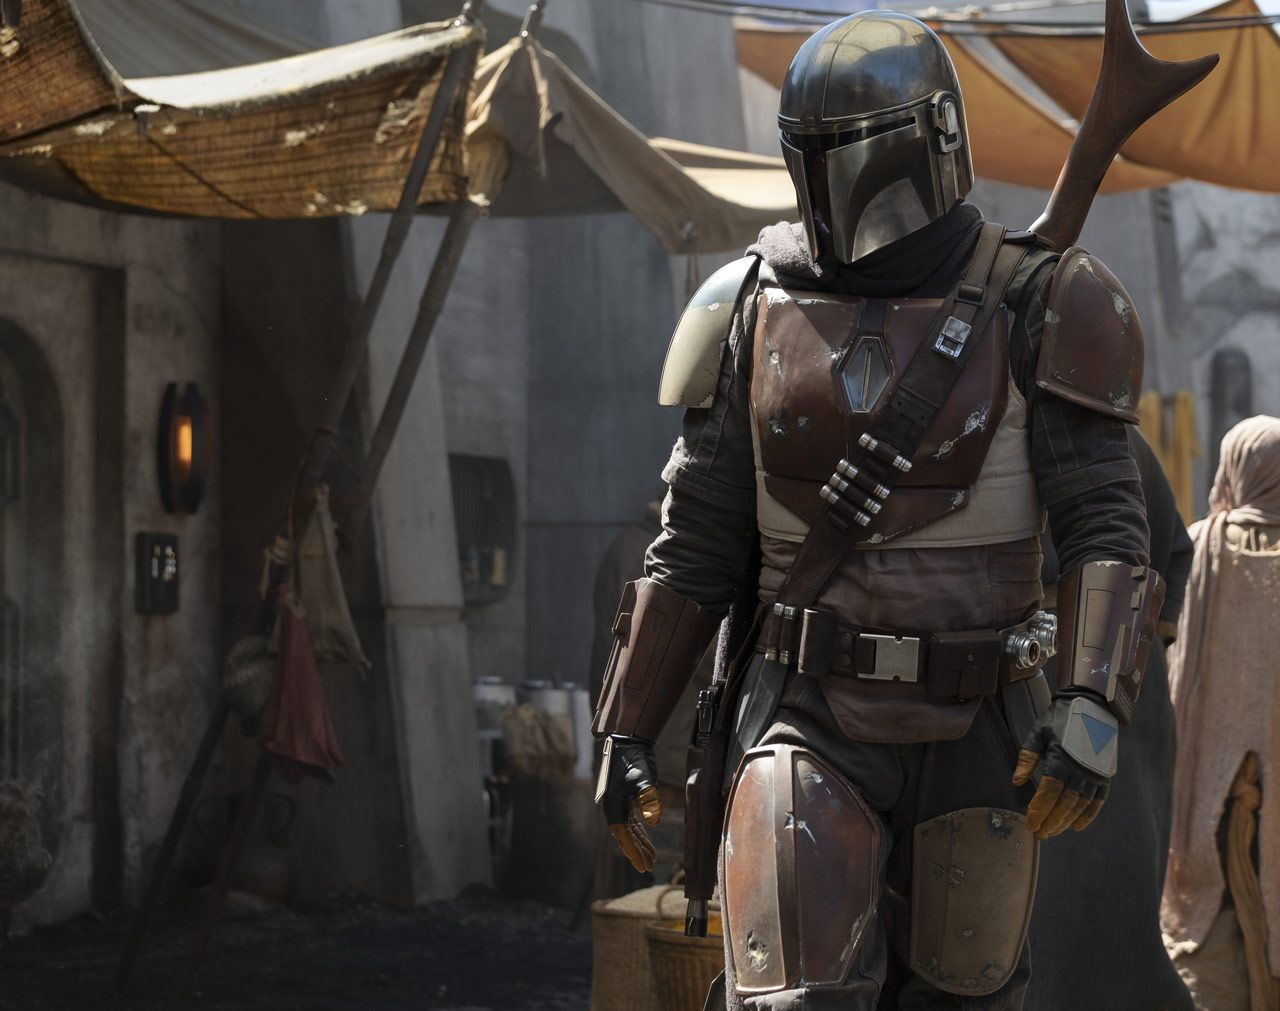 Taika Waititi, Bryce Dallas Howard And More Directing The Mandalorian